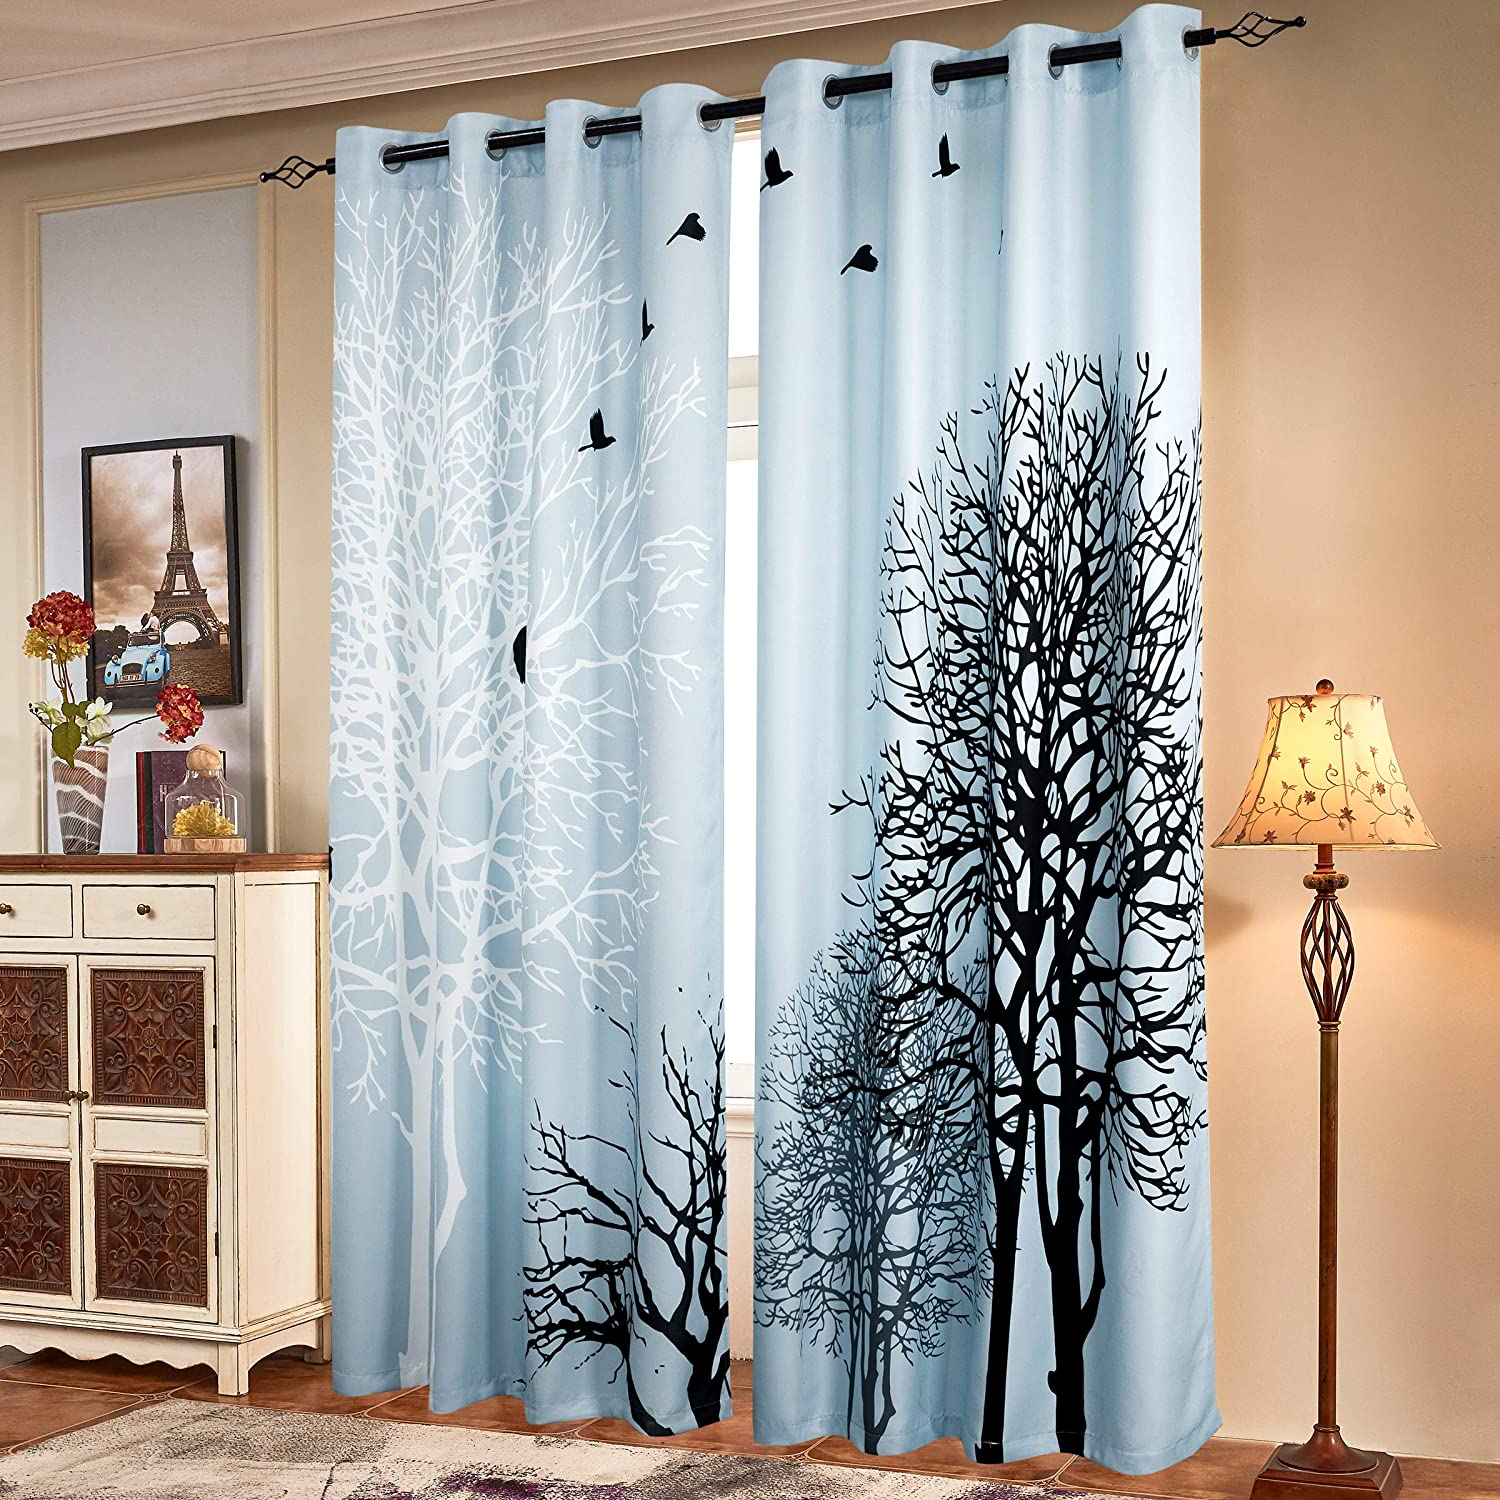 Subrtex Printed Curtains Blackout For Bedroom Living Room Kids Room Dining Room Valance Colorful Window Drapes 2 Panel Set 52 X 63 Light Blue Kitchen Dining